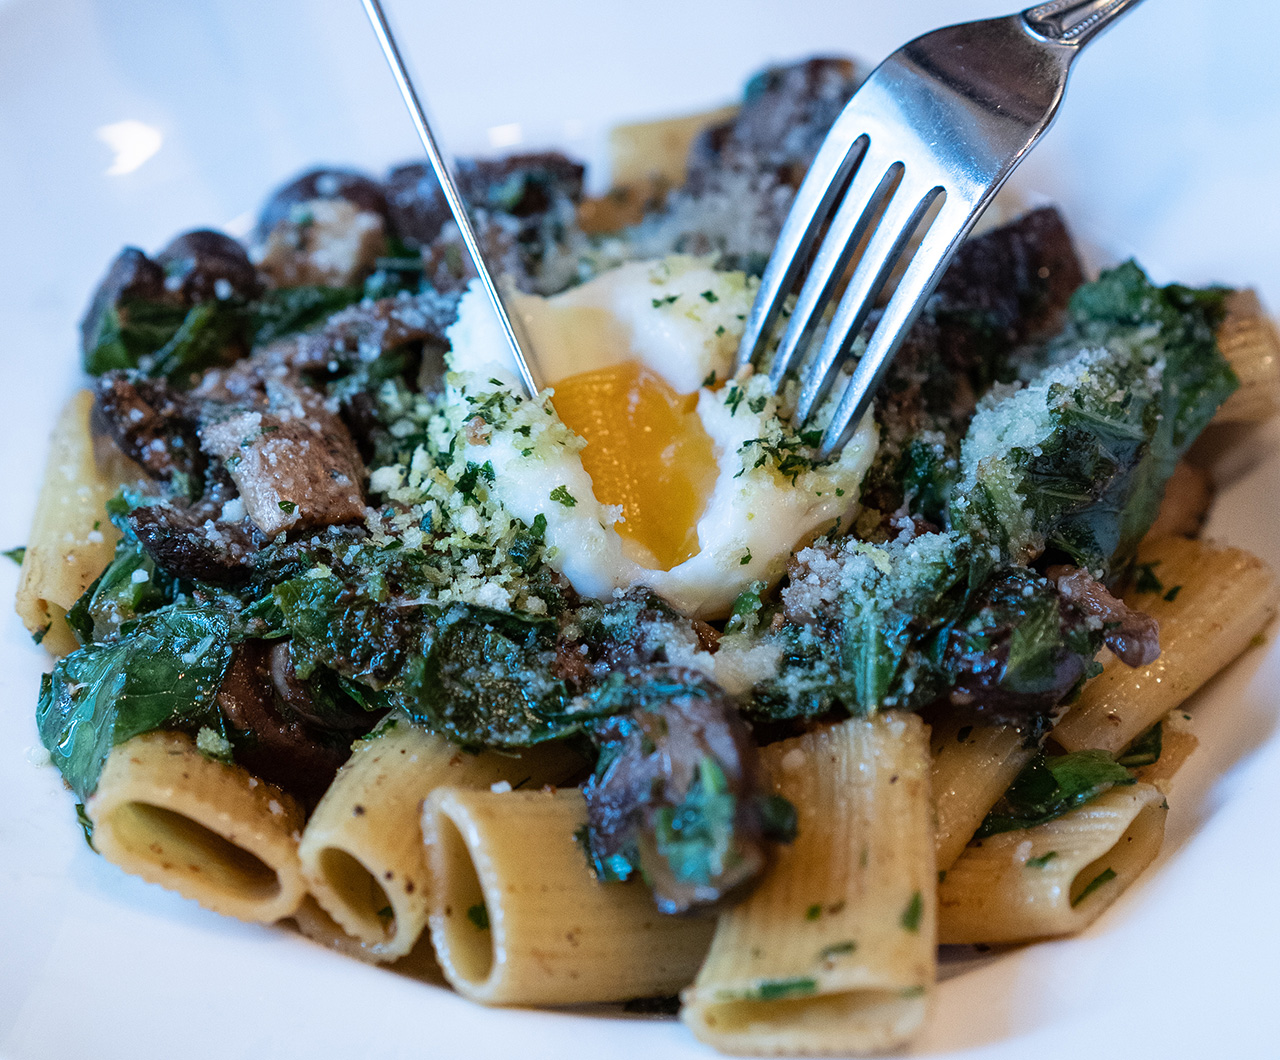 A close up of the creamy pasta,